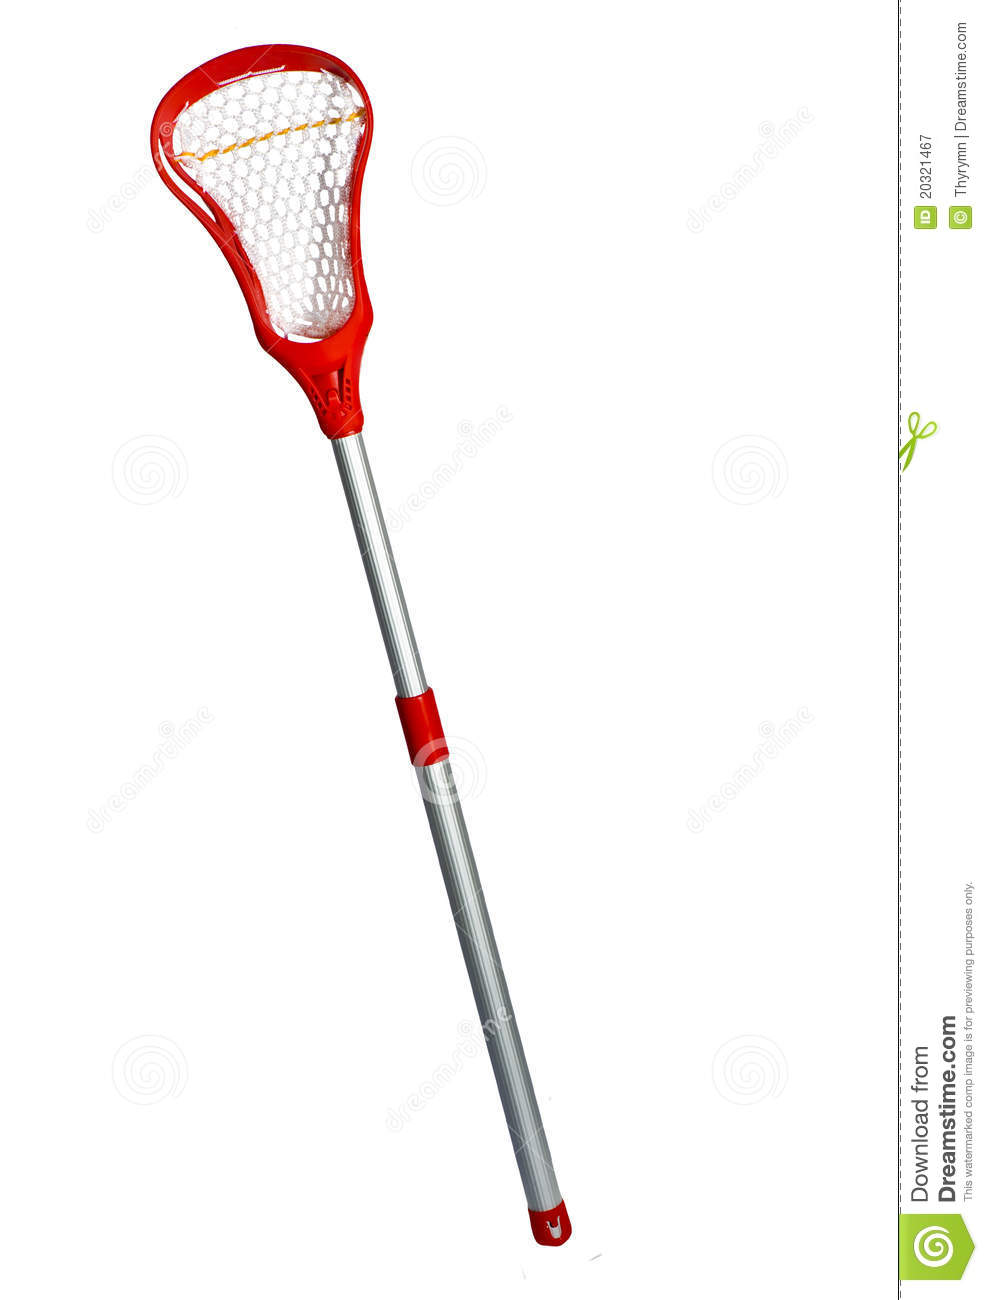 Lacrosse Stick Royalty Free Stock Photography - Image: 20321467